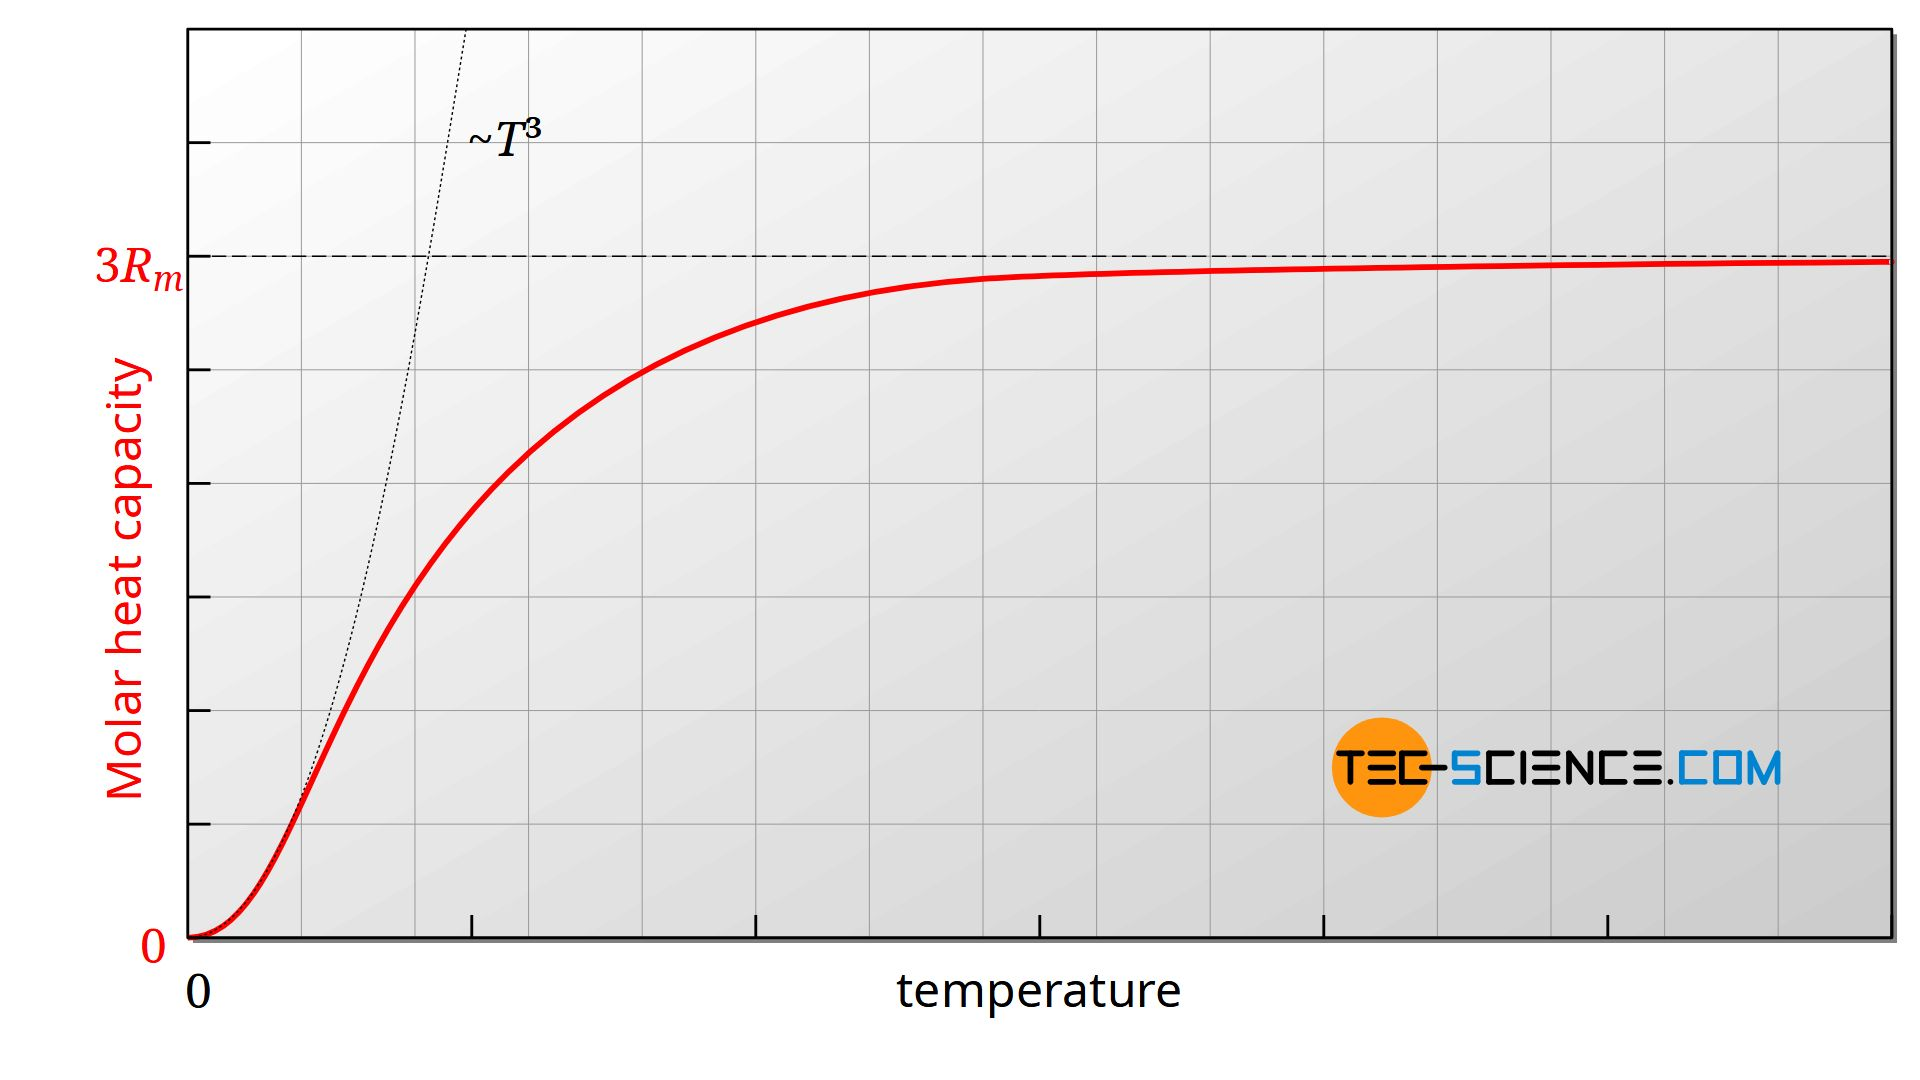 Molar heat capacity of solids as a function of temperature